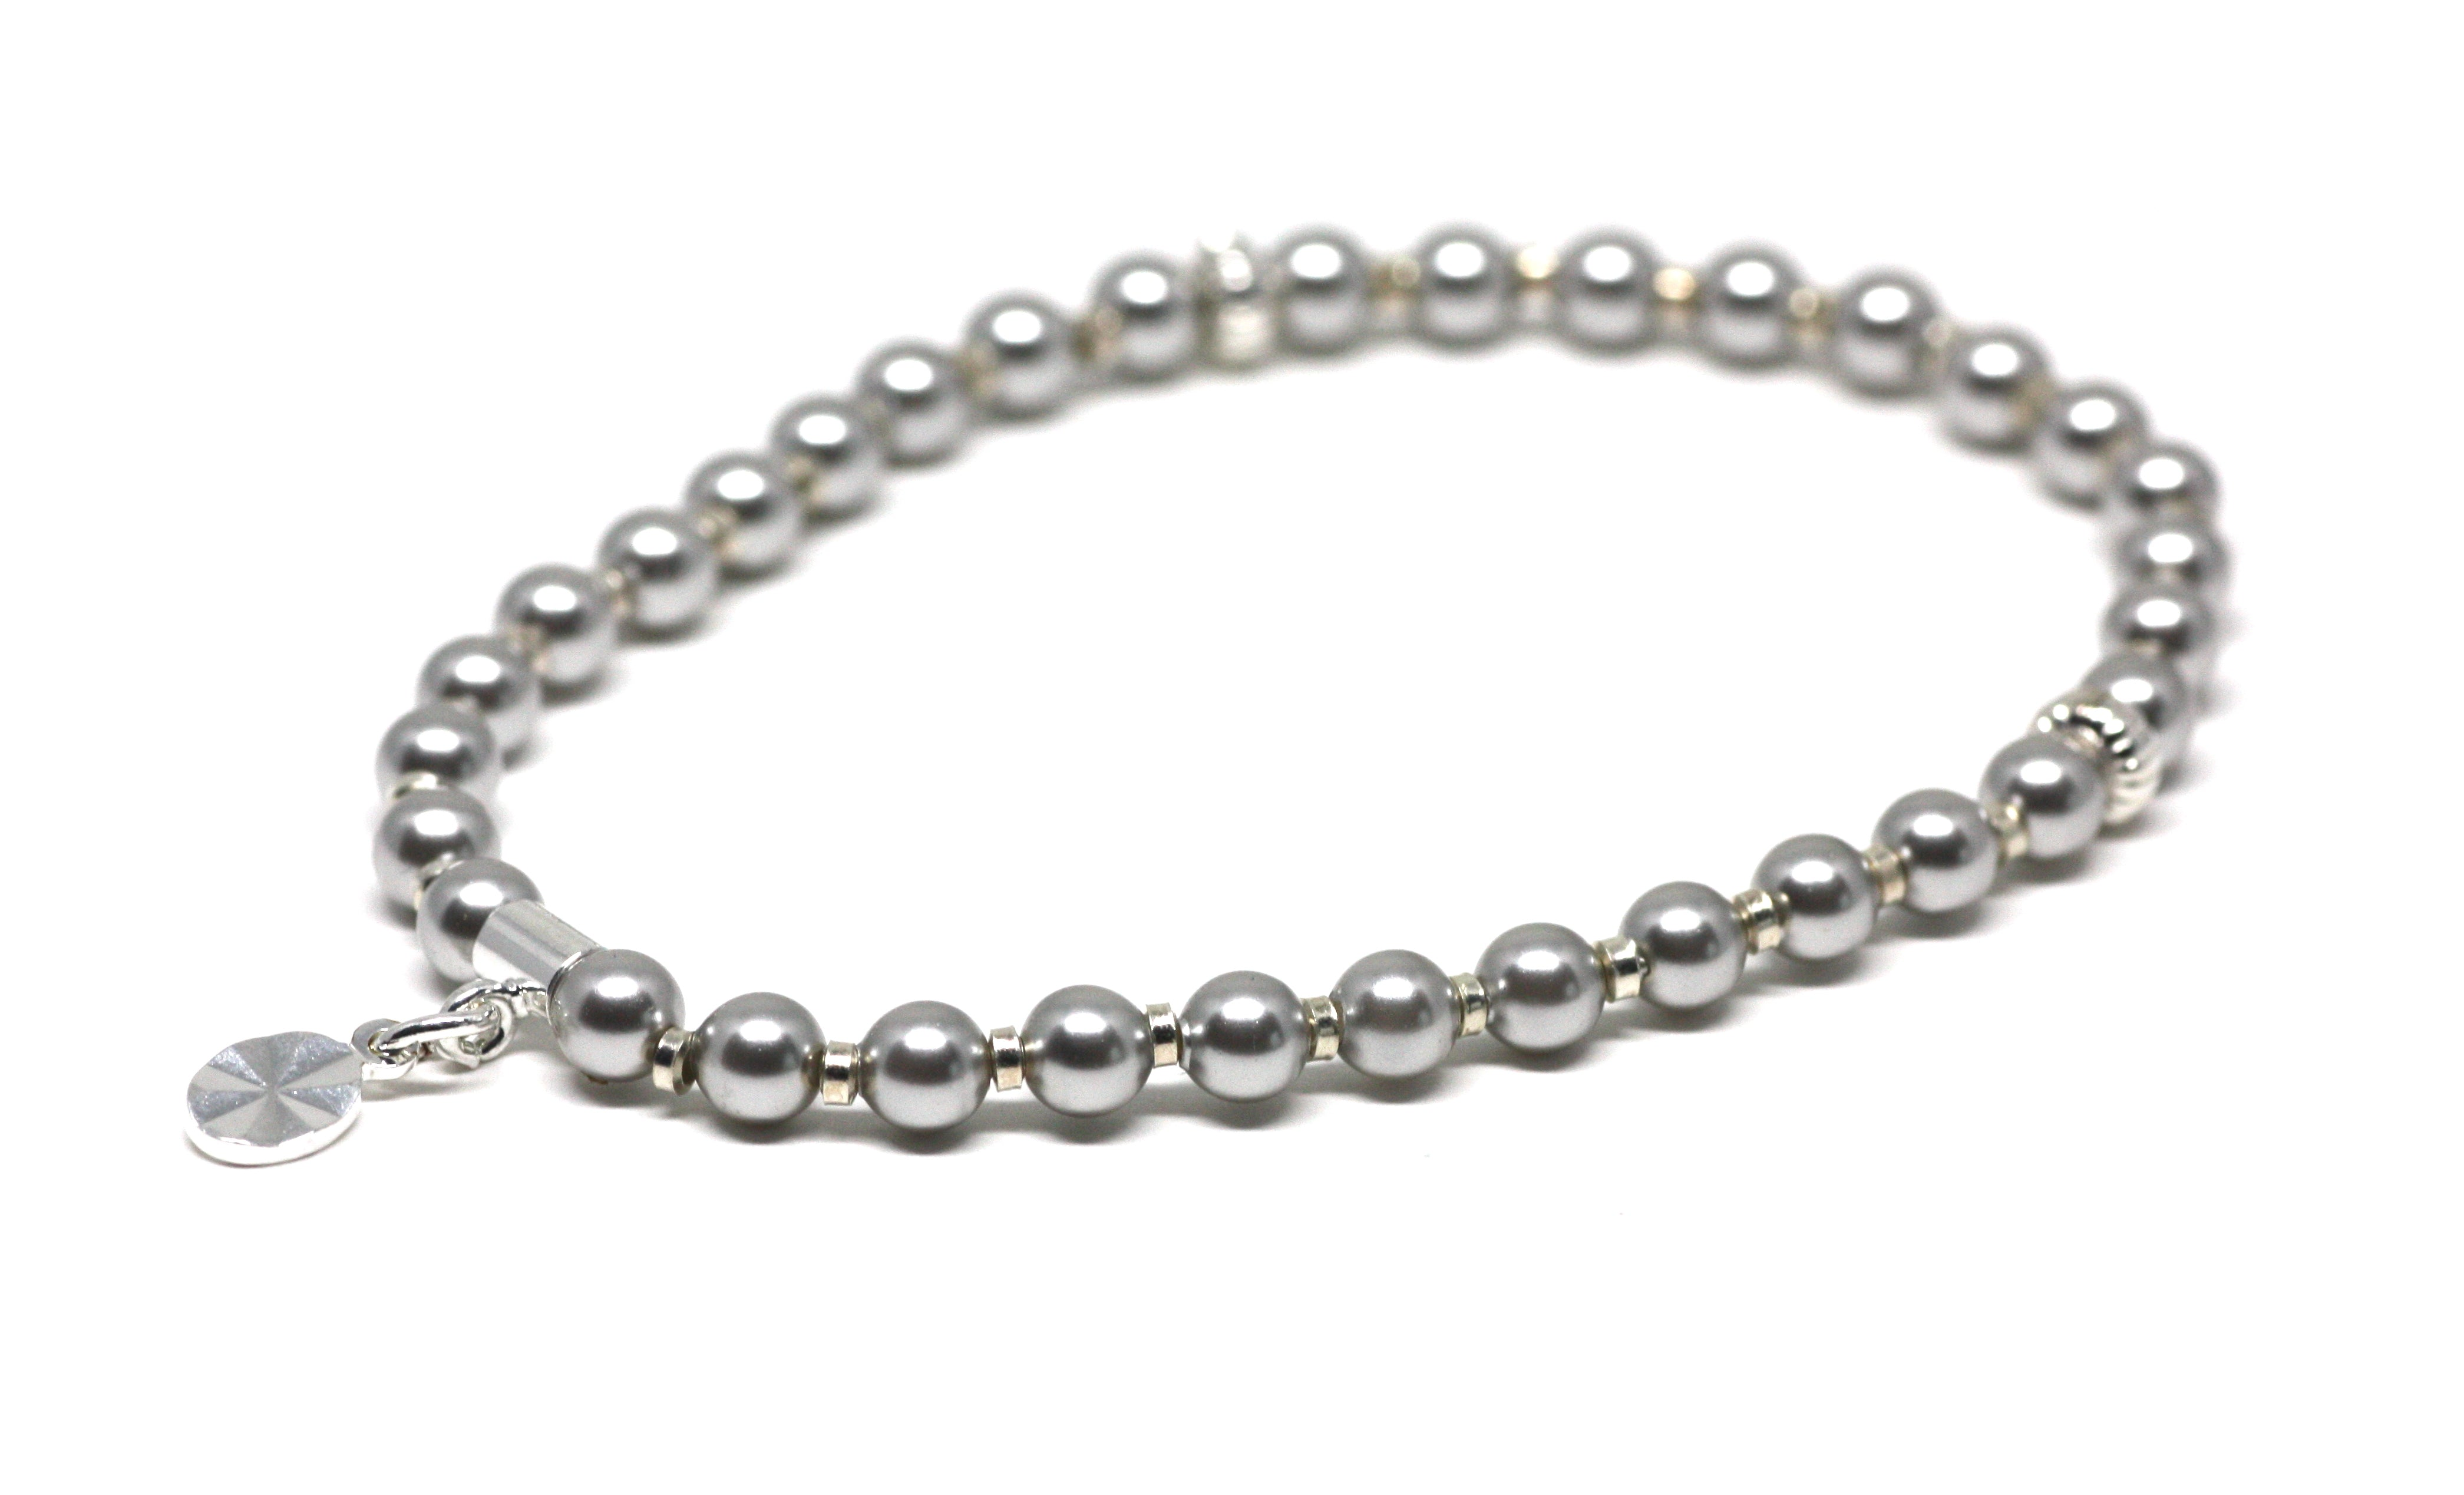 Light Gray Pearl and Silver Wrist Tasbih